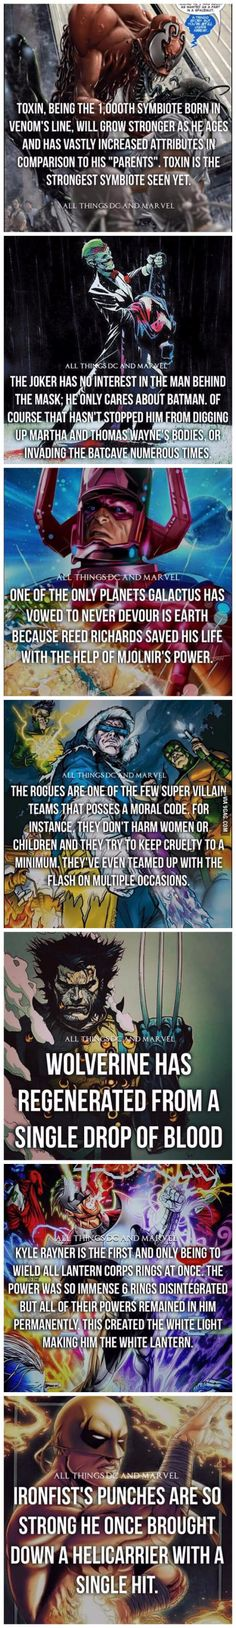 Superhero Facts: Part 3